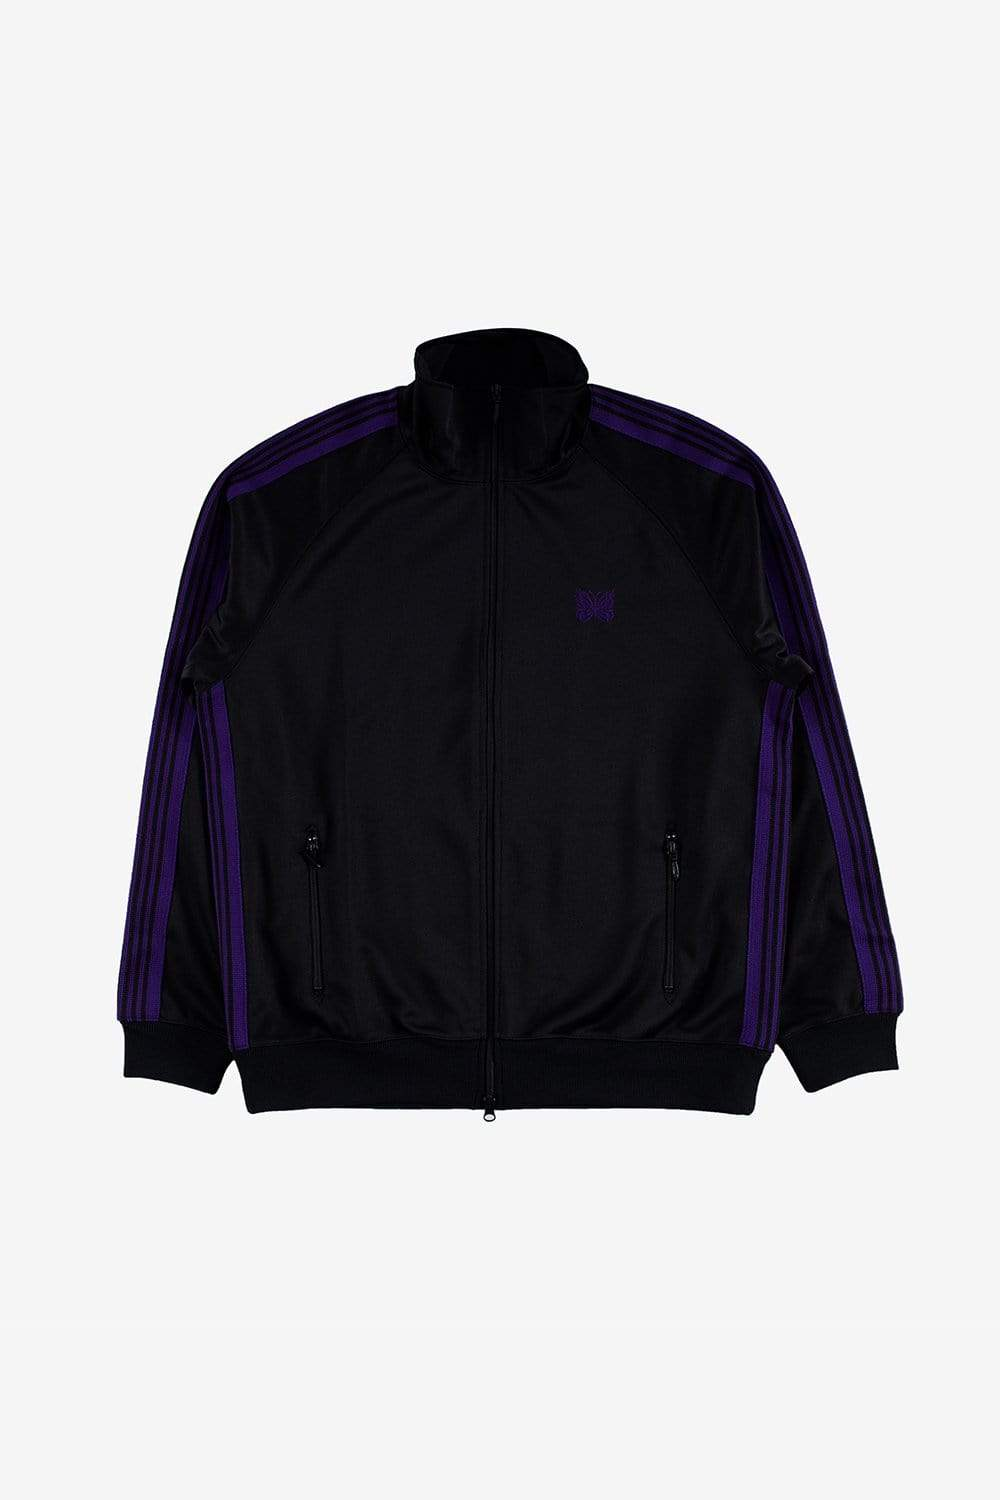 Needles Apparel L Track Jacket Poly Smooth